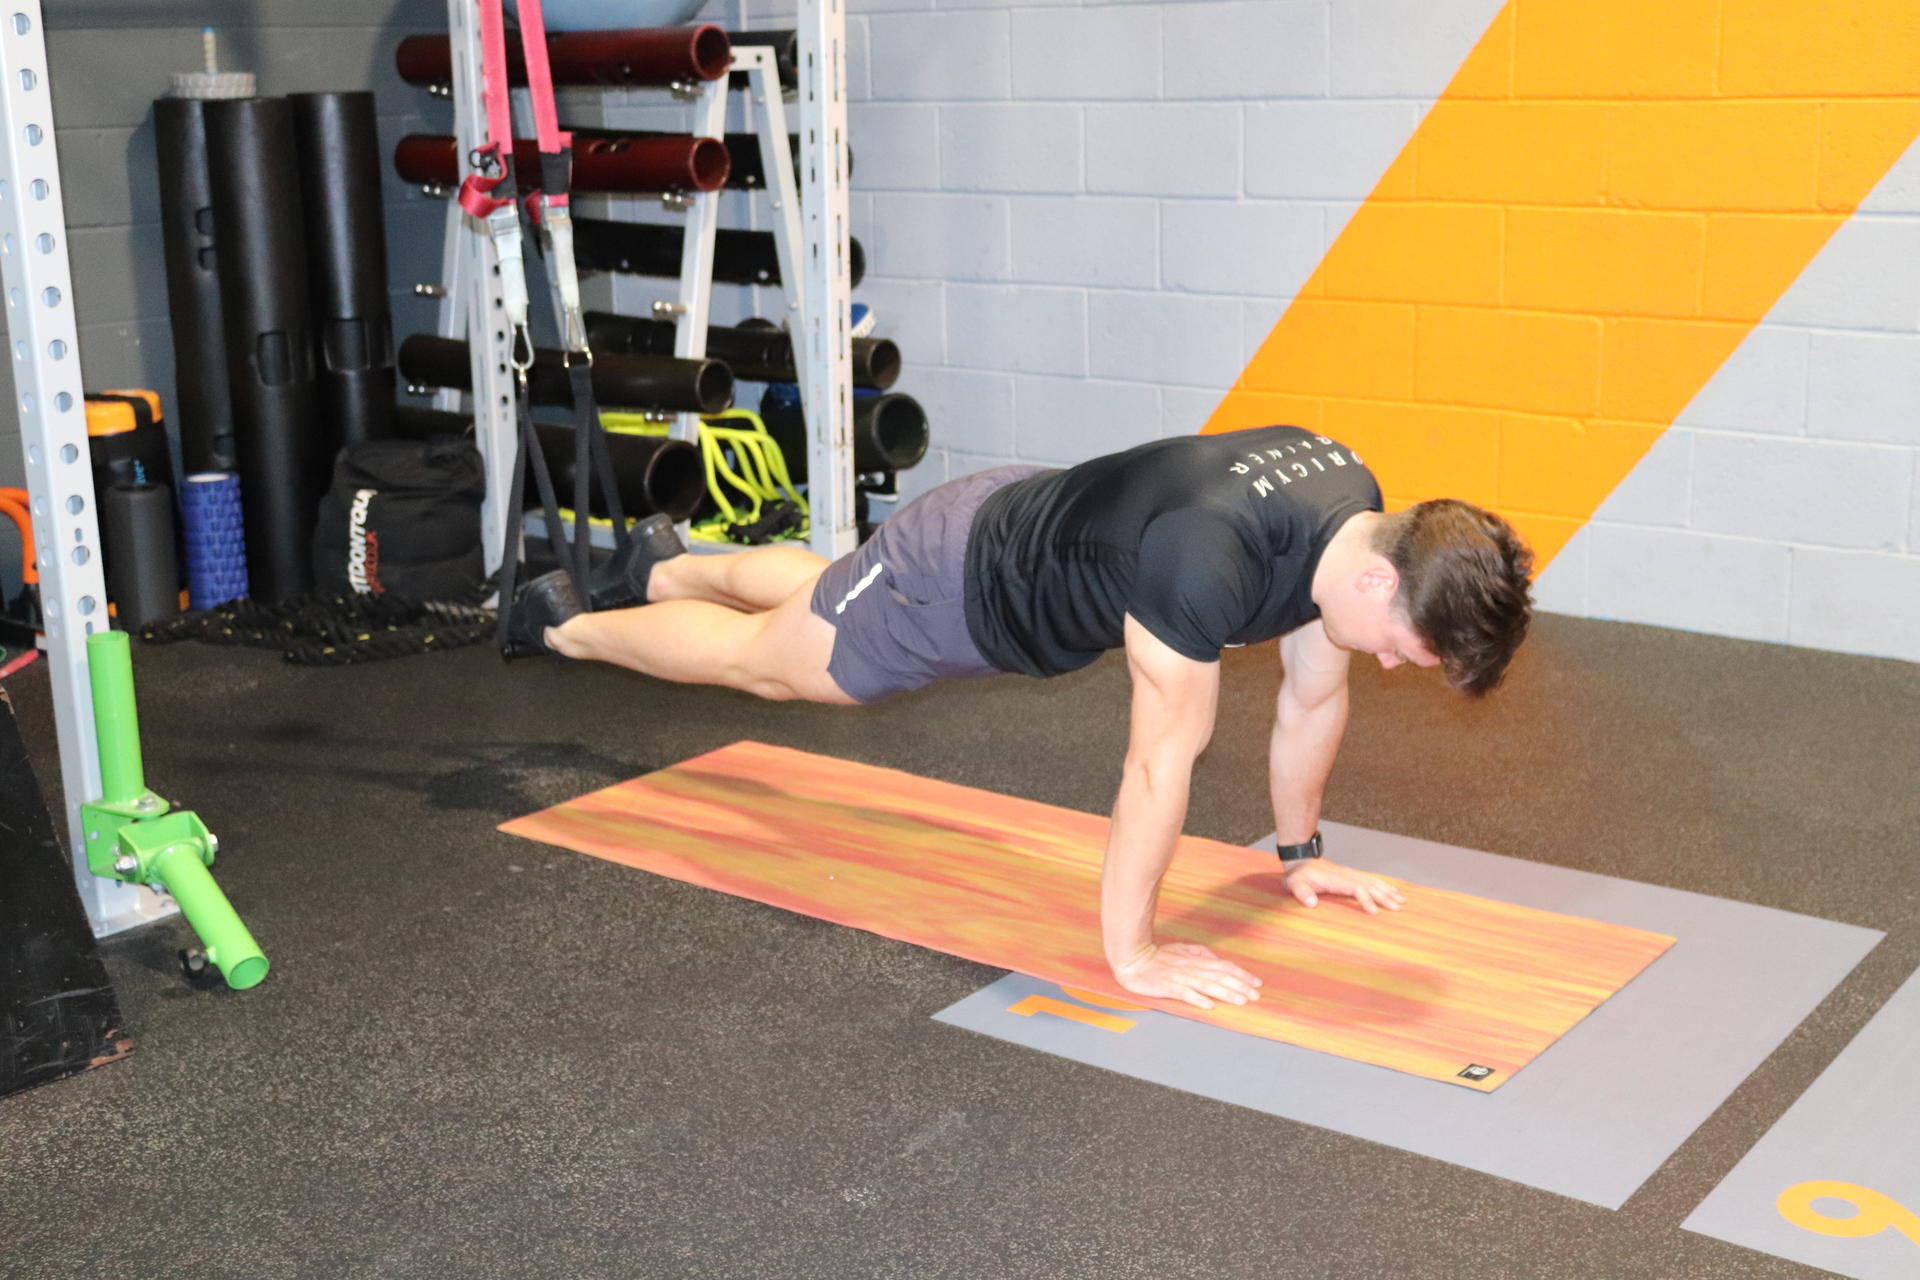 trx suspension training exercise videos